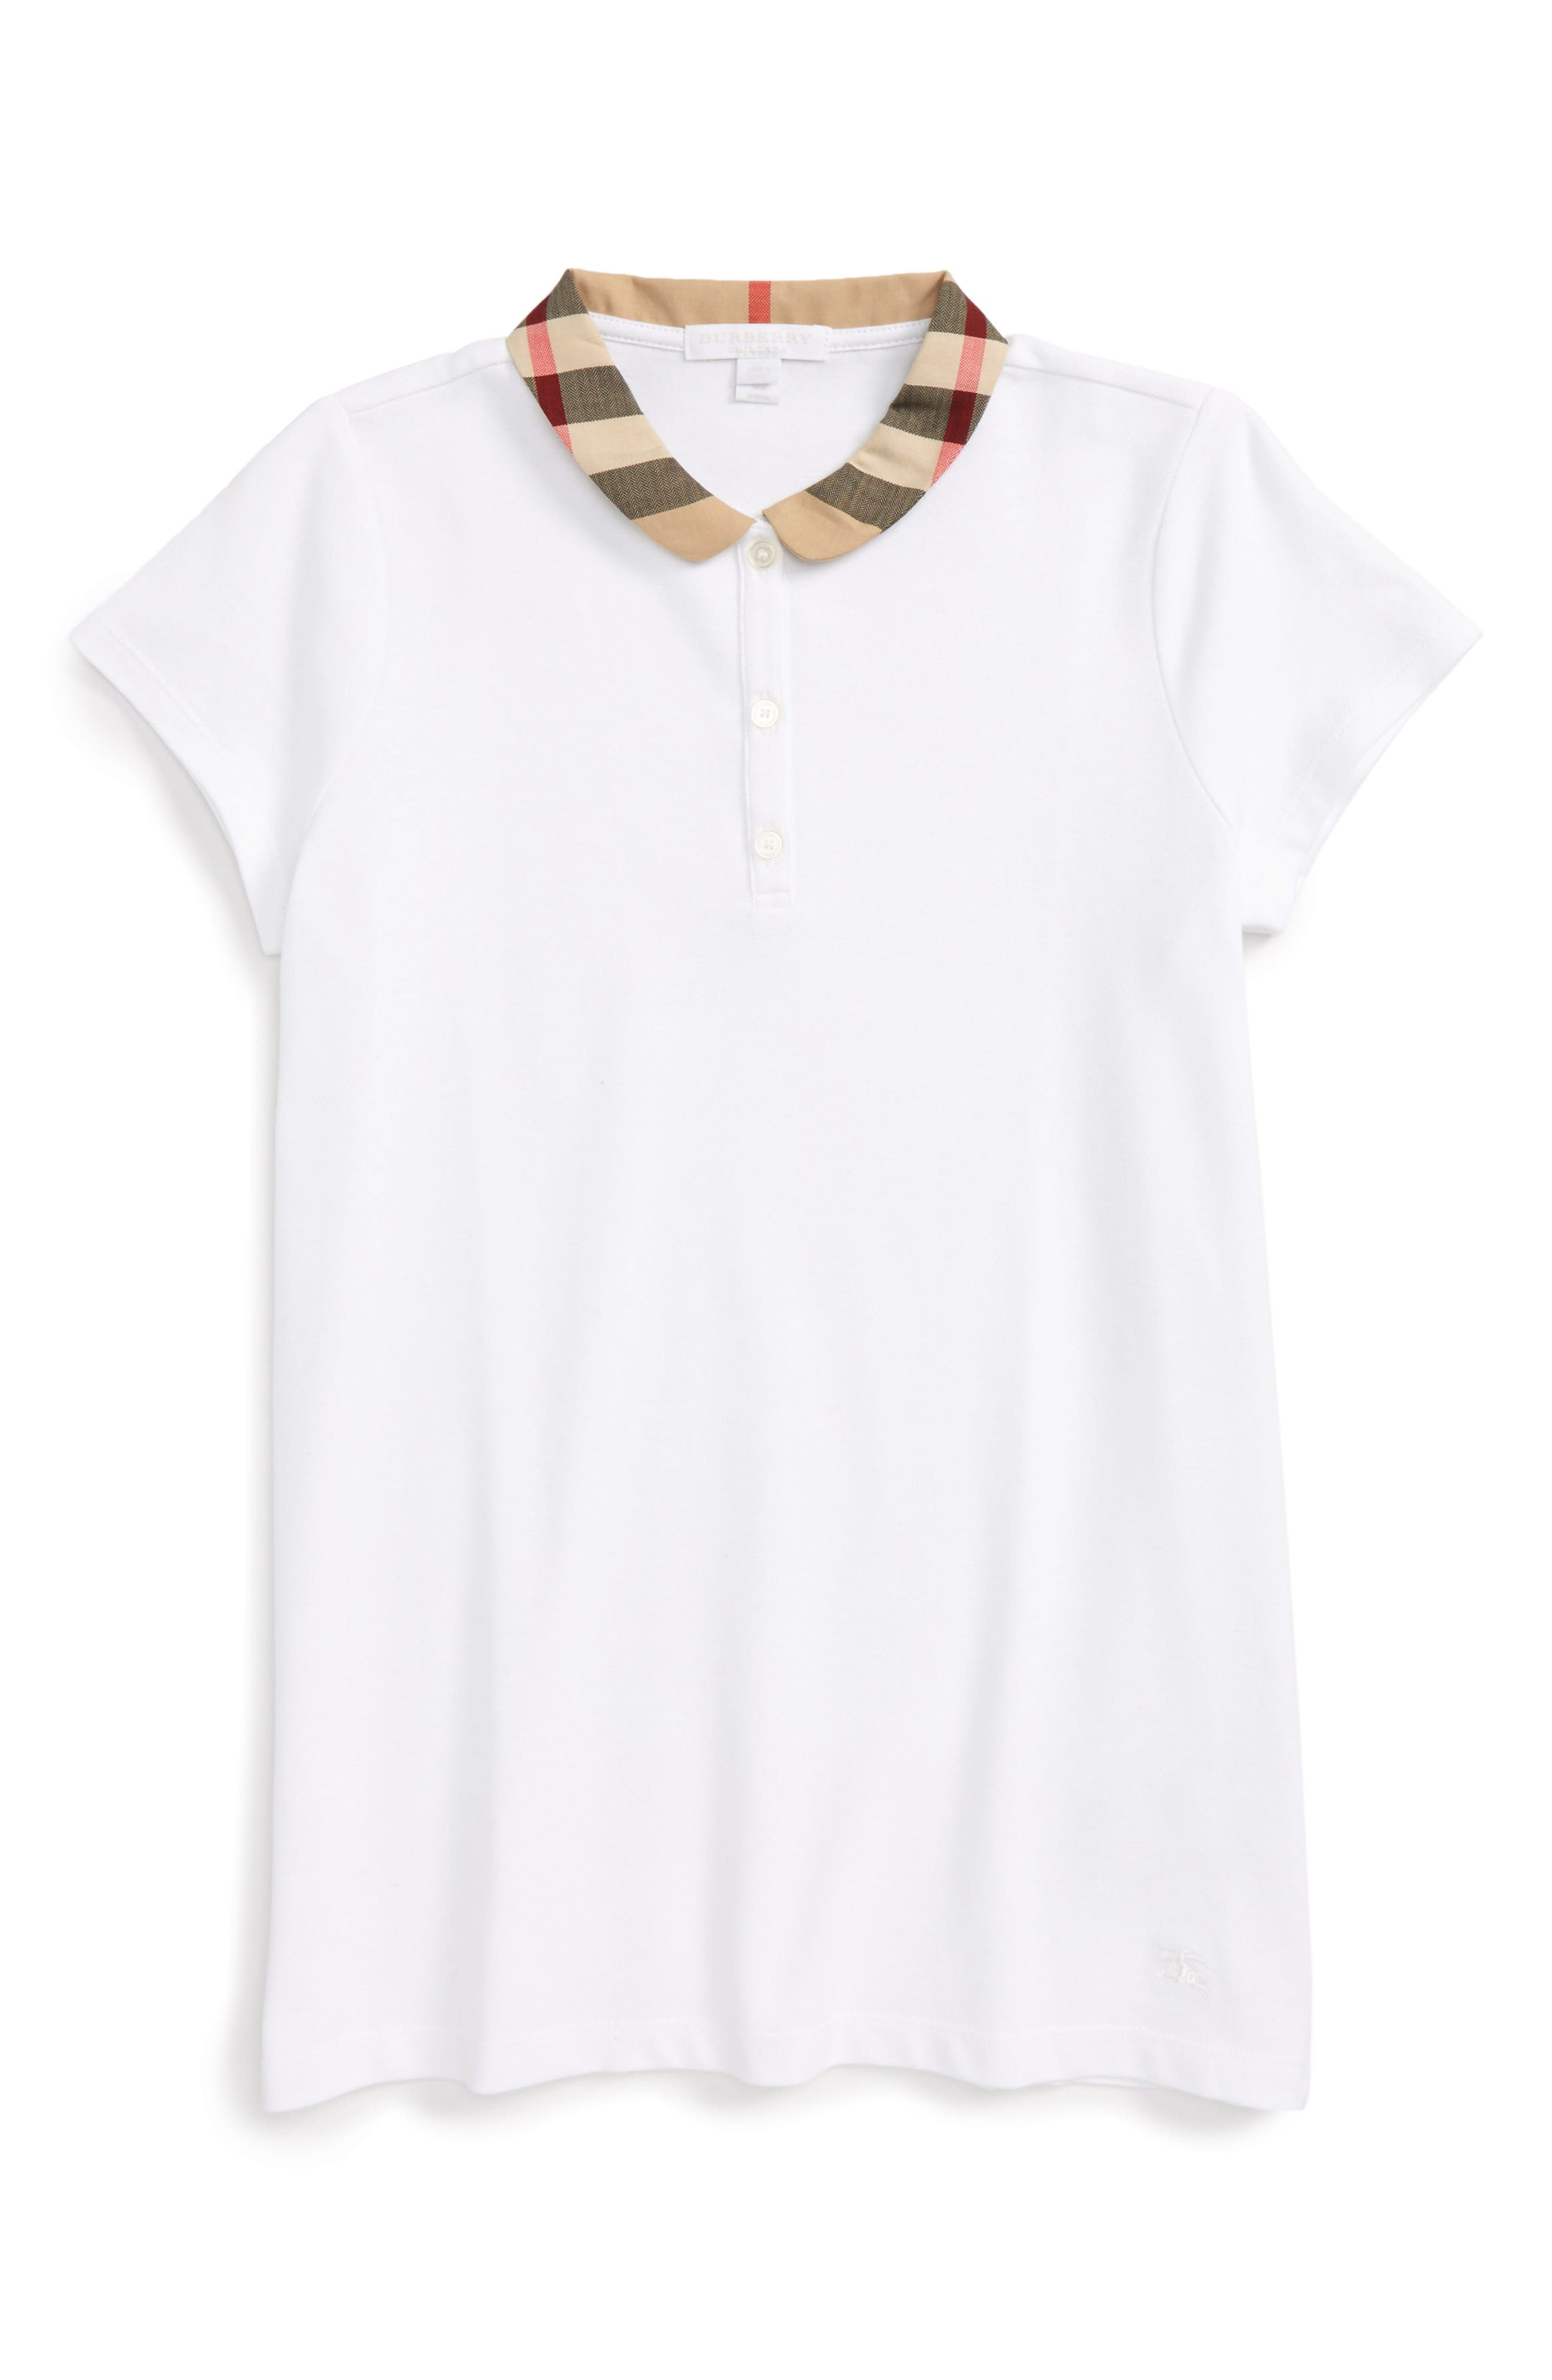 Alternate Image 1 Selected - Burberry Zadie Check Collar Polo (Little Girls & Big Girls)